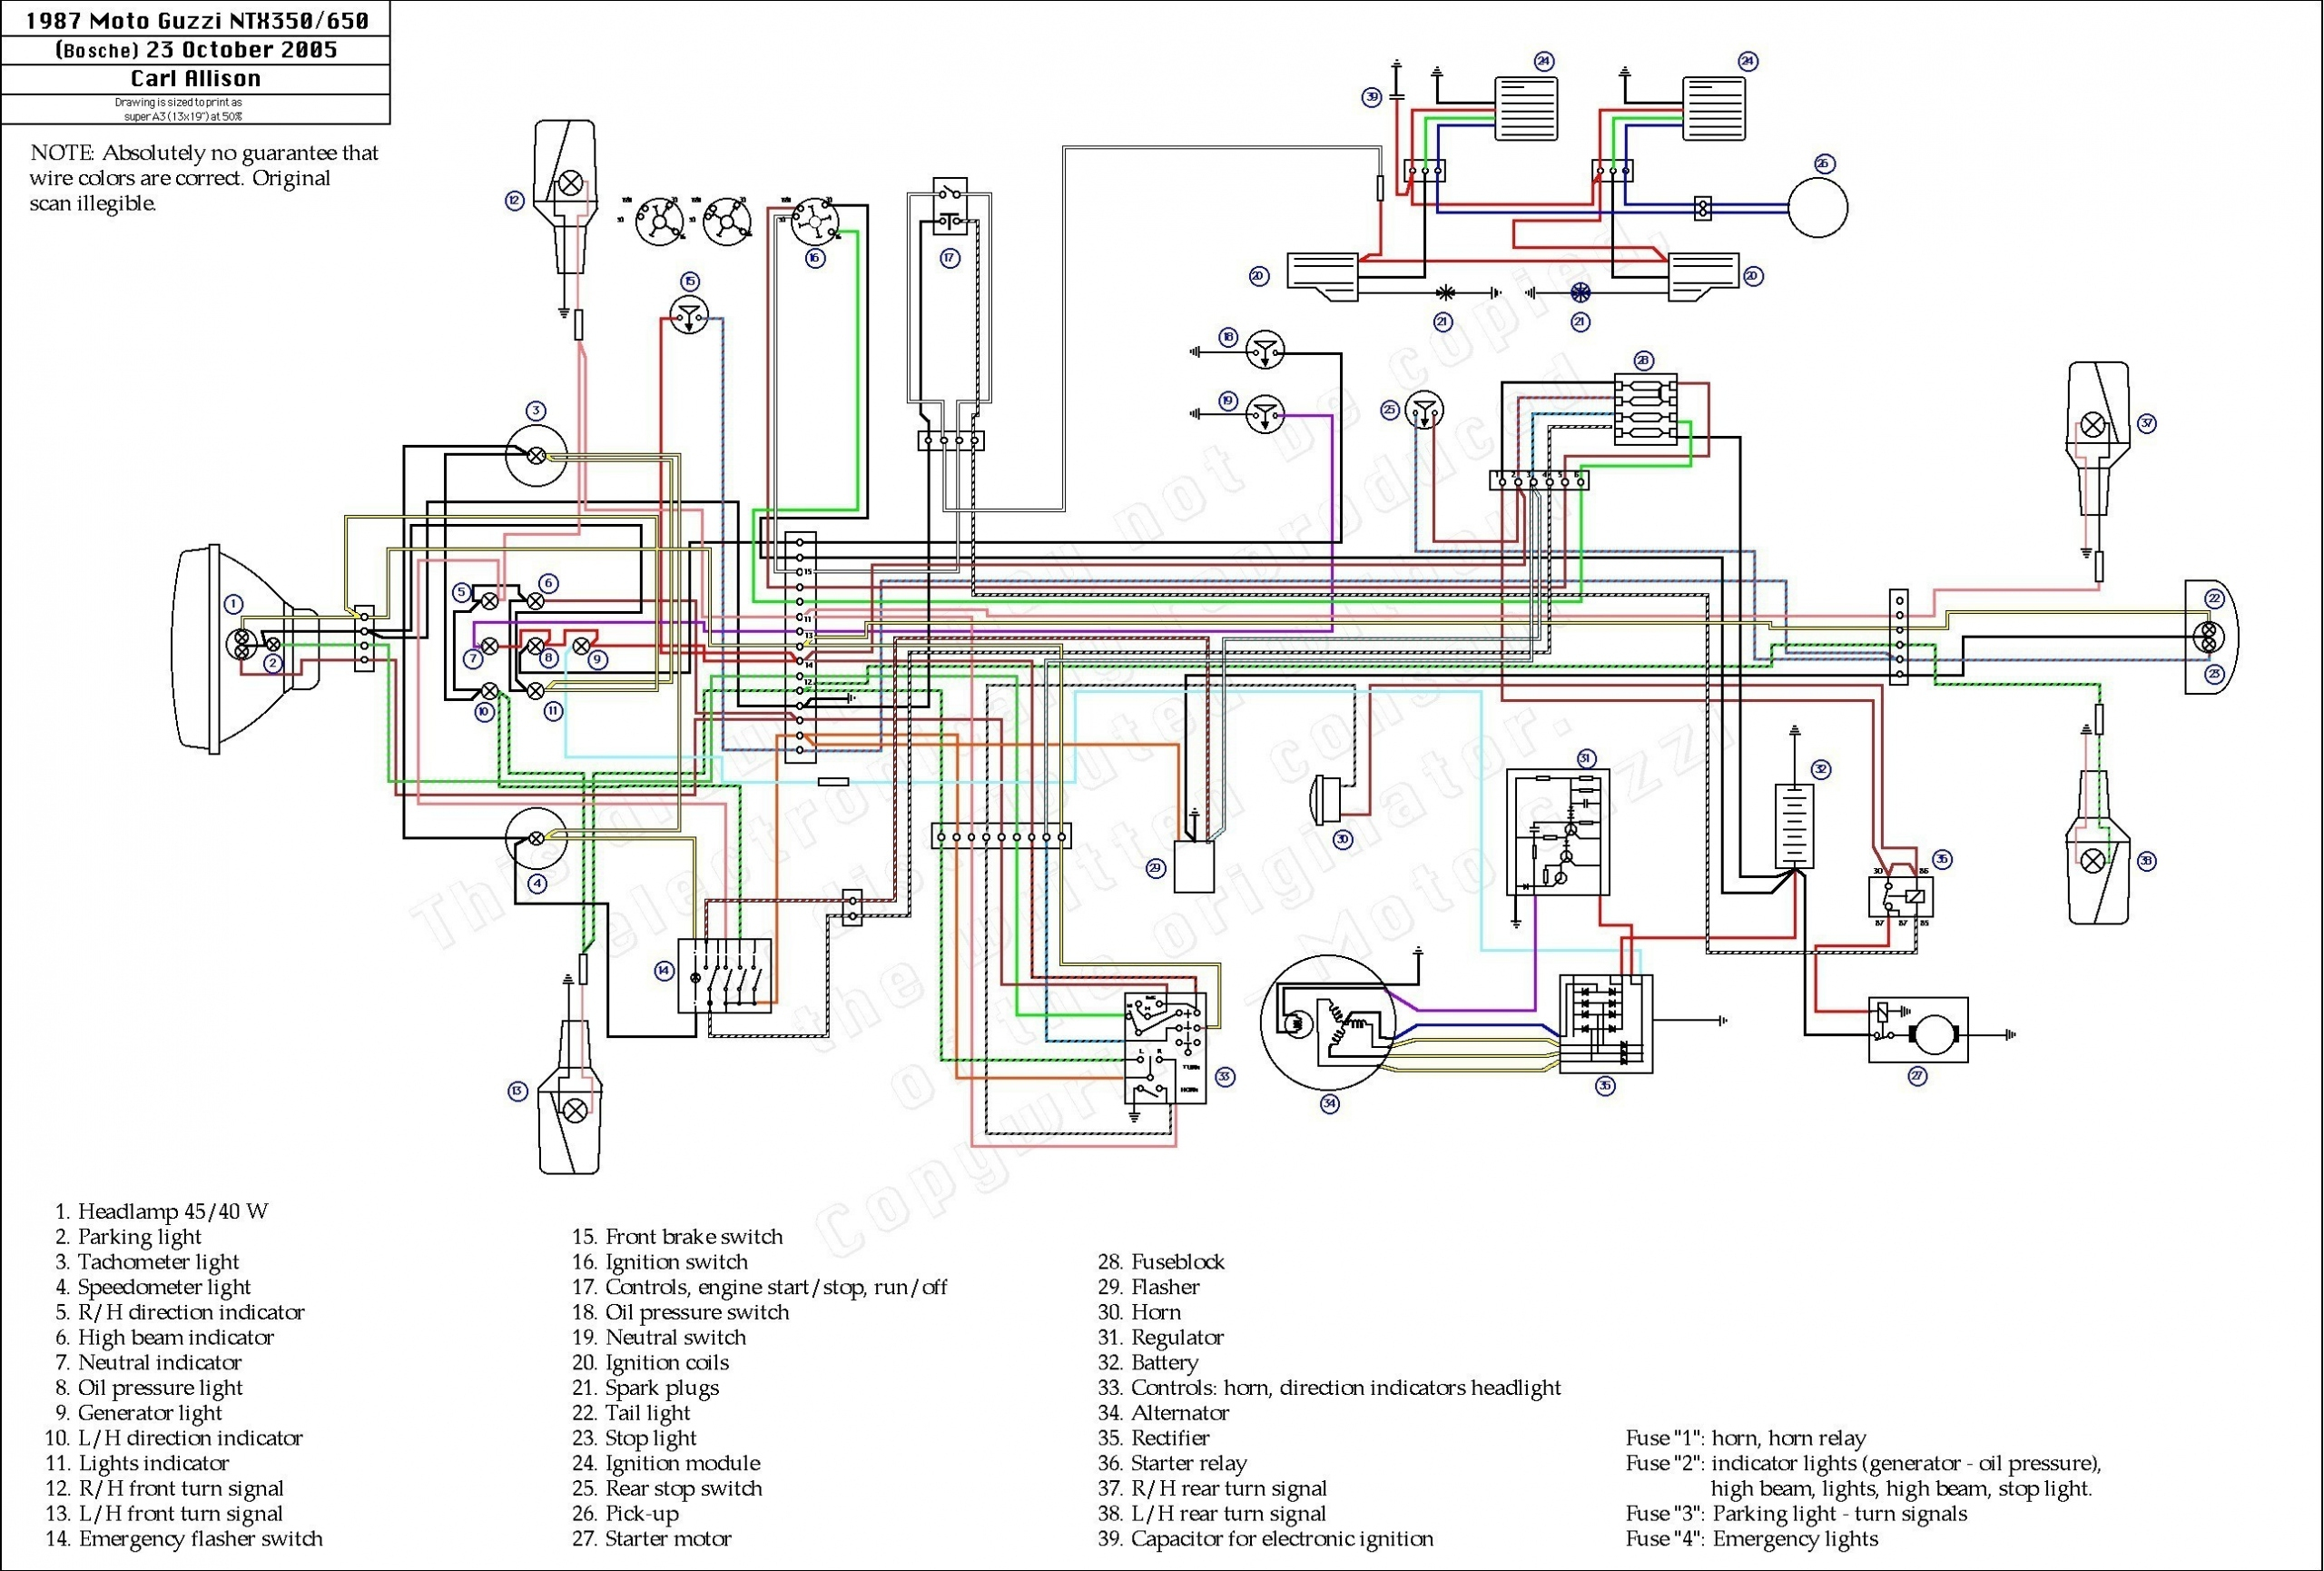 Ads C2000 Crossover Wiring Diagram | Wiring Library - Taotao 125 Atv Wiring Diagram